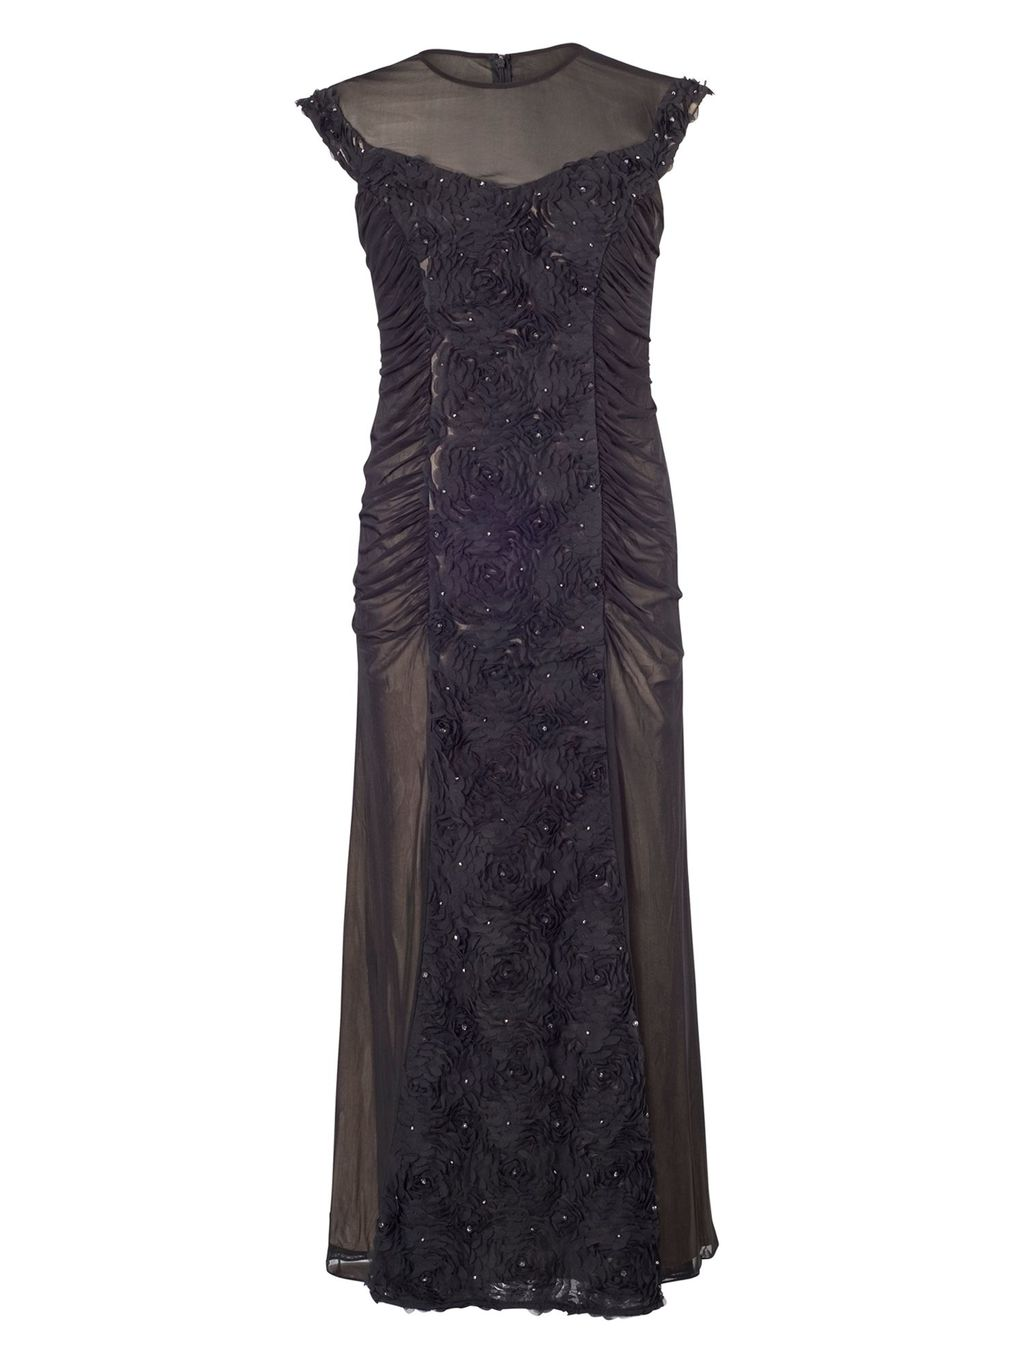 Black Floral/Beaded Mesh Long Dress, Black - sleeve style: capped; pattern: plain; style: maxi dress; length: ankle length; predominant colour: aubergine; occasions: evening, occasion; fit: body skimming; fibres: polyester/polyamide - 100%; neckline: crew; sleeve length: sleeveless; texture group: sheer fabrics/chiffon/organza etc.; pattern type: fabric; embellishment: beading; season: a/w 2014; wardrobe: event